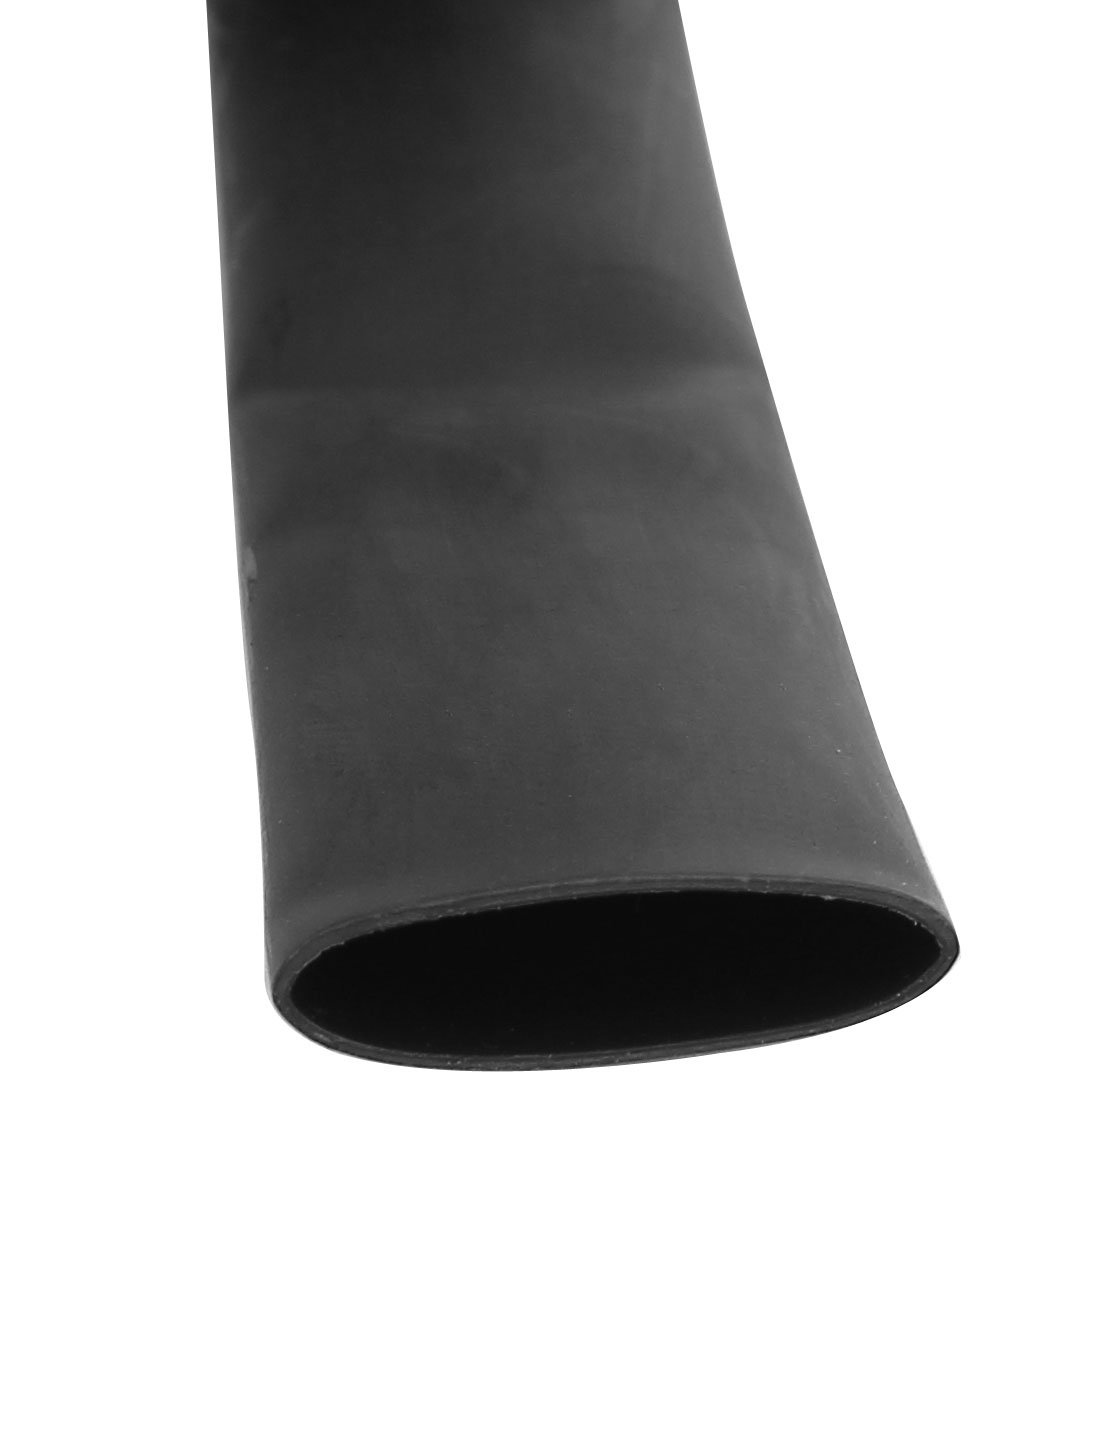 15 mm,5//8inch 4ft uxcell Dual-Wall 3:1 Adhesive Lined Heat Shrink Tubing Sleeving